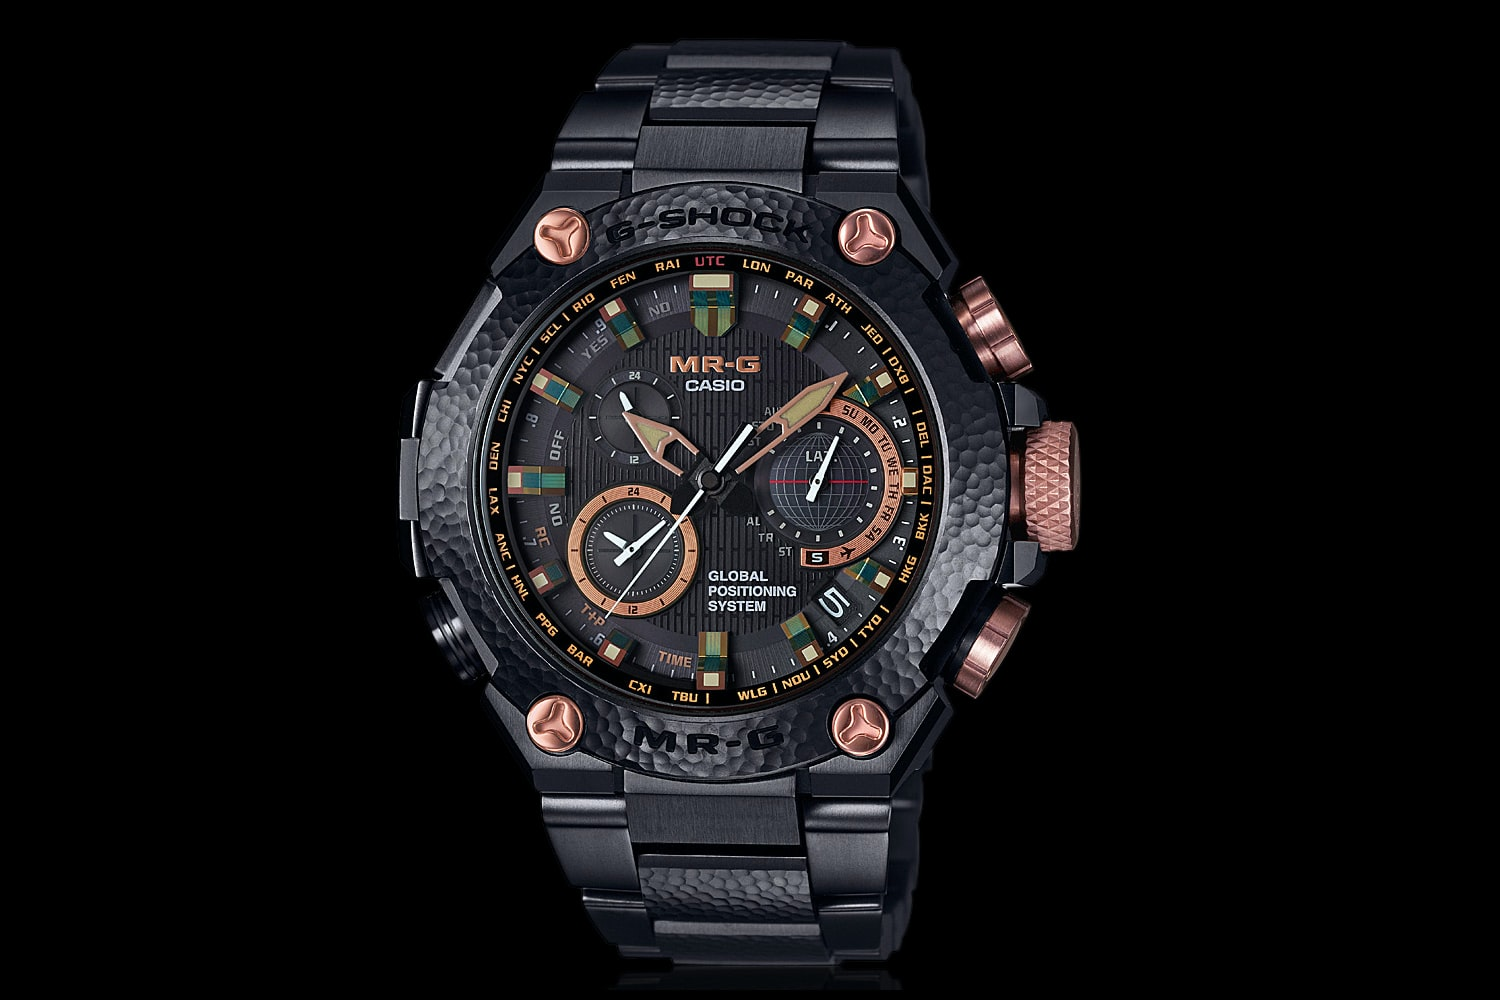 MR-G G-Shock Hammer Tone Introducing: The Casio G-Shock MR-G Limited Edition 'Hammer Tone' (Are You Ready For A $6,200 G-Shock?) Introducing: The Casio G-Shock MR-G Limited Edition 'Hammer Tone' (Are You Ready For A $6,200 G-Shock?) g shock